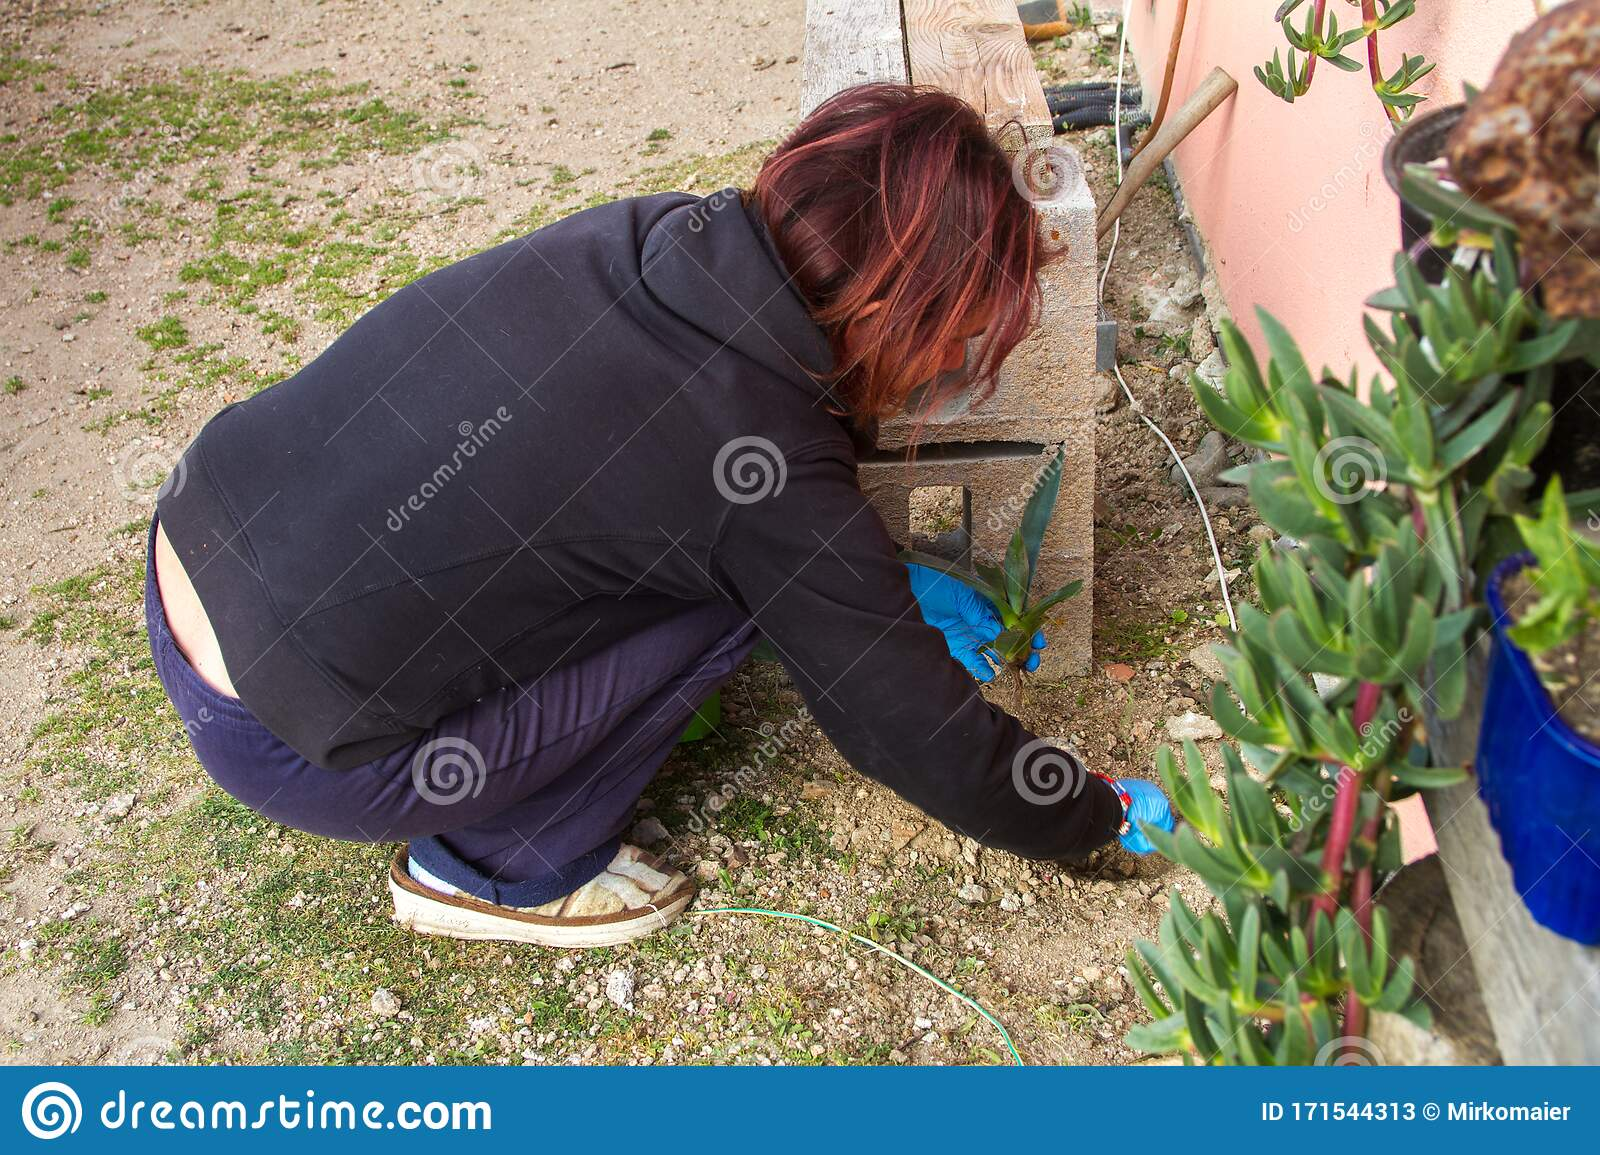 Woman Gardening In The Garden By Planting Aloe Vera Plants Next To